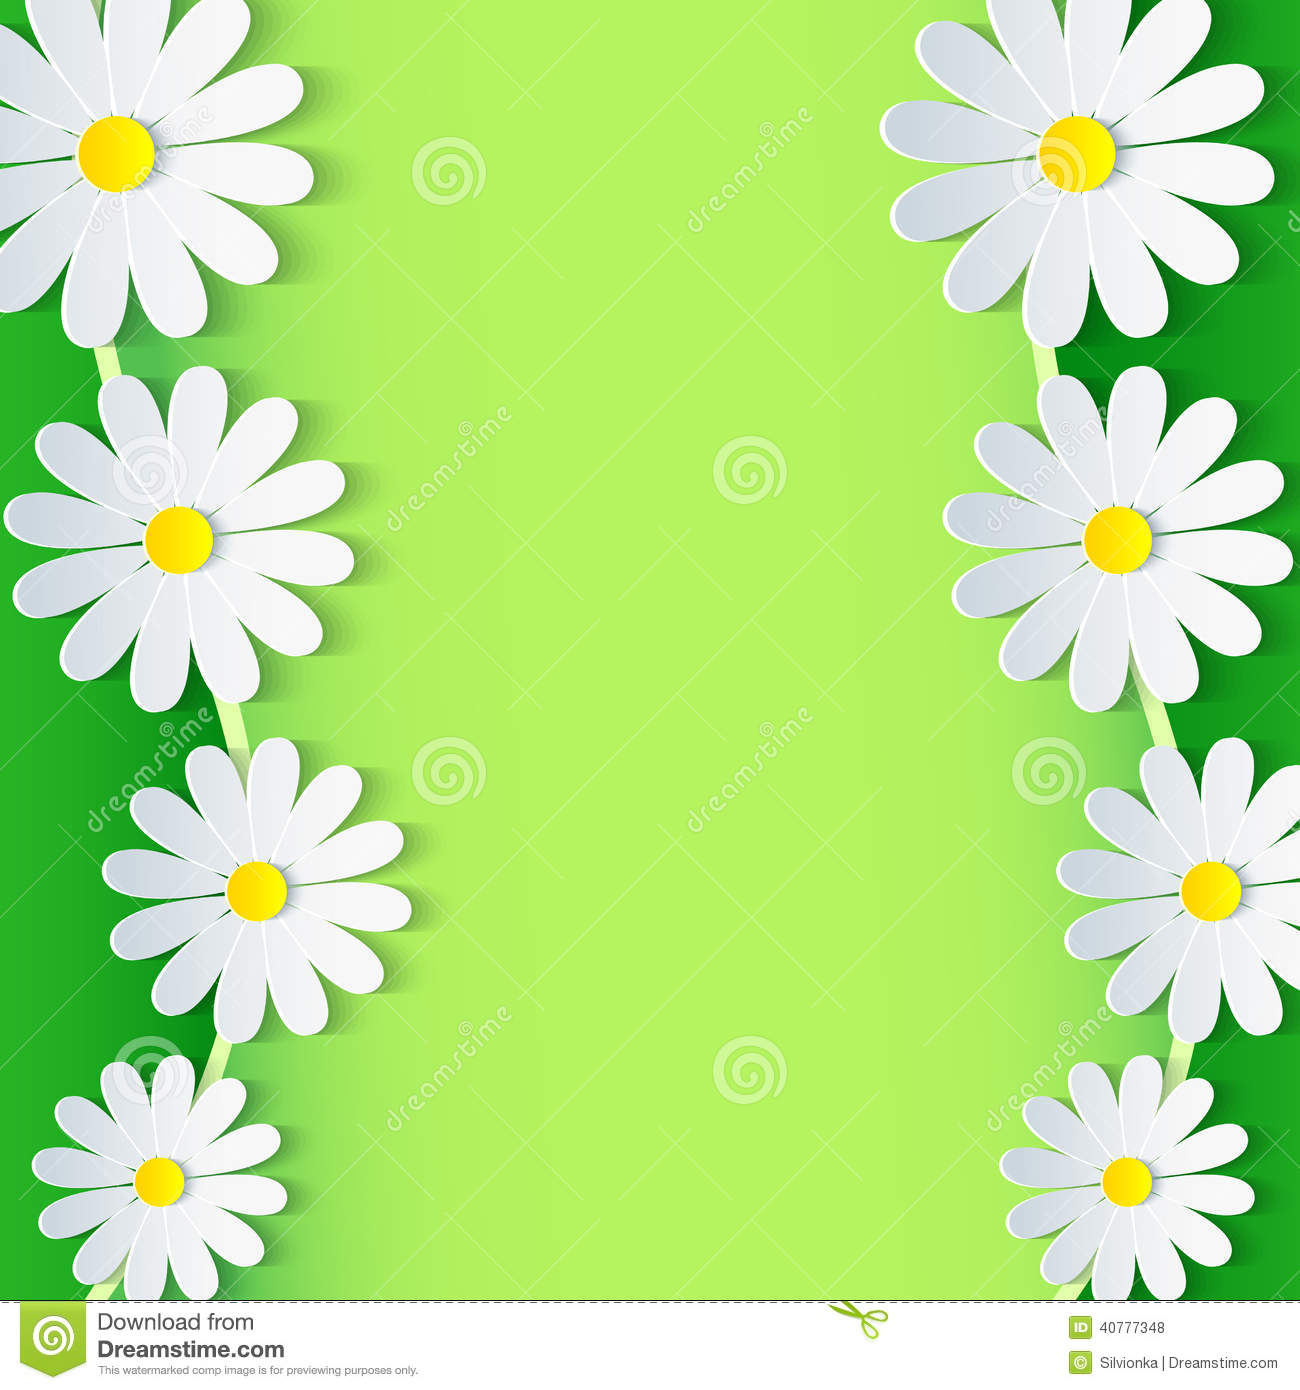 free green floral frame - photo #47